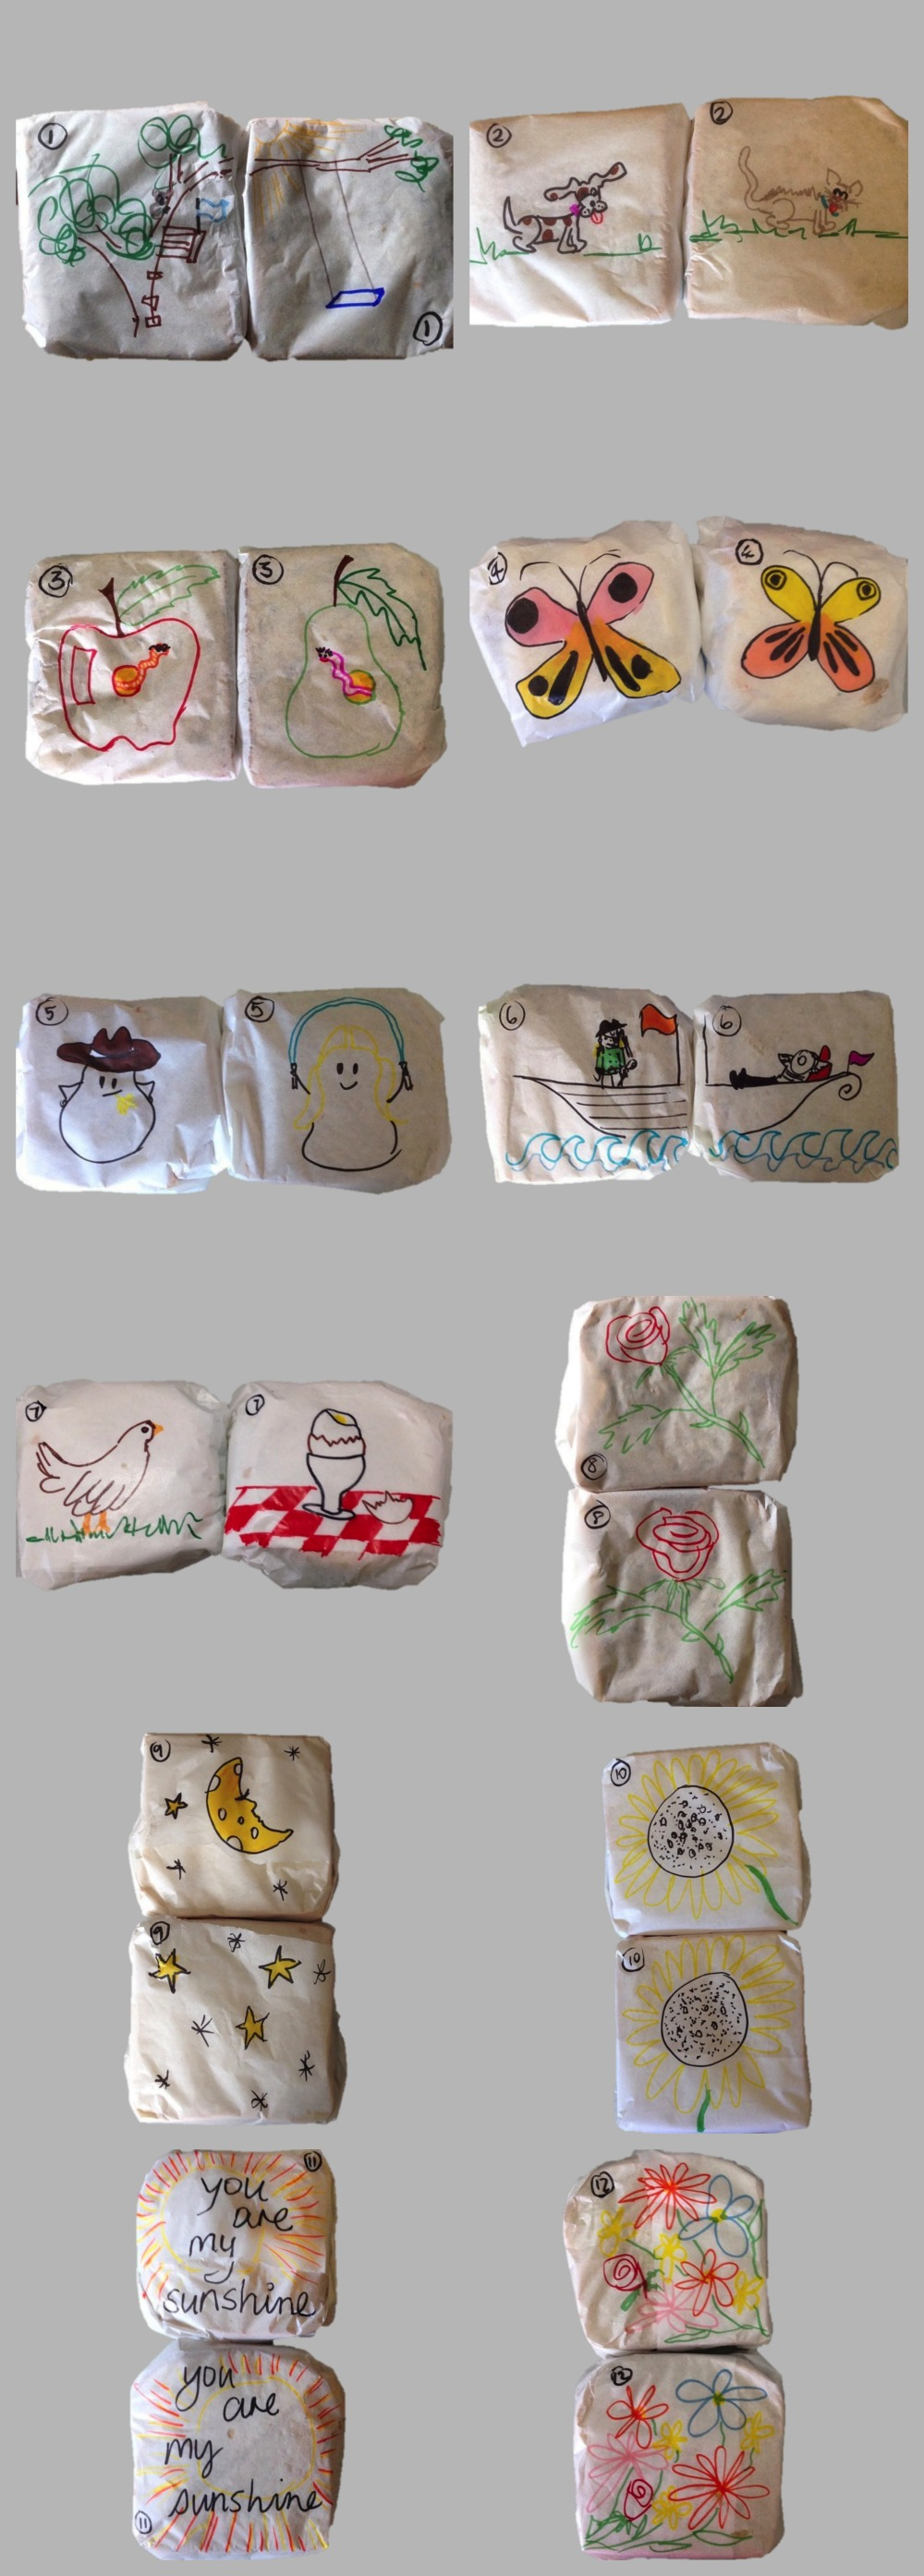 Cute lunch box idea - draw cute designs on to baking paper for sandwich wrapping